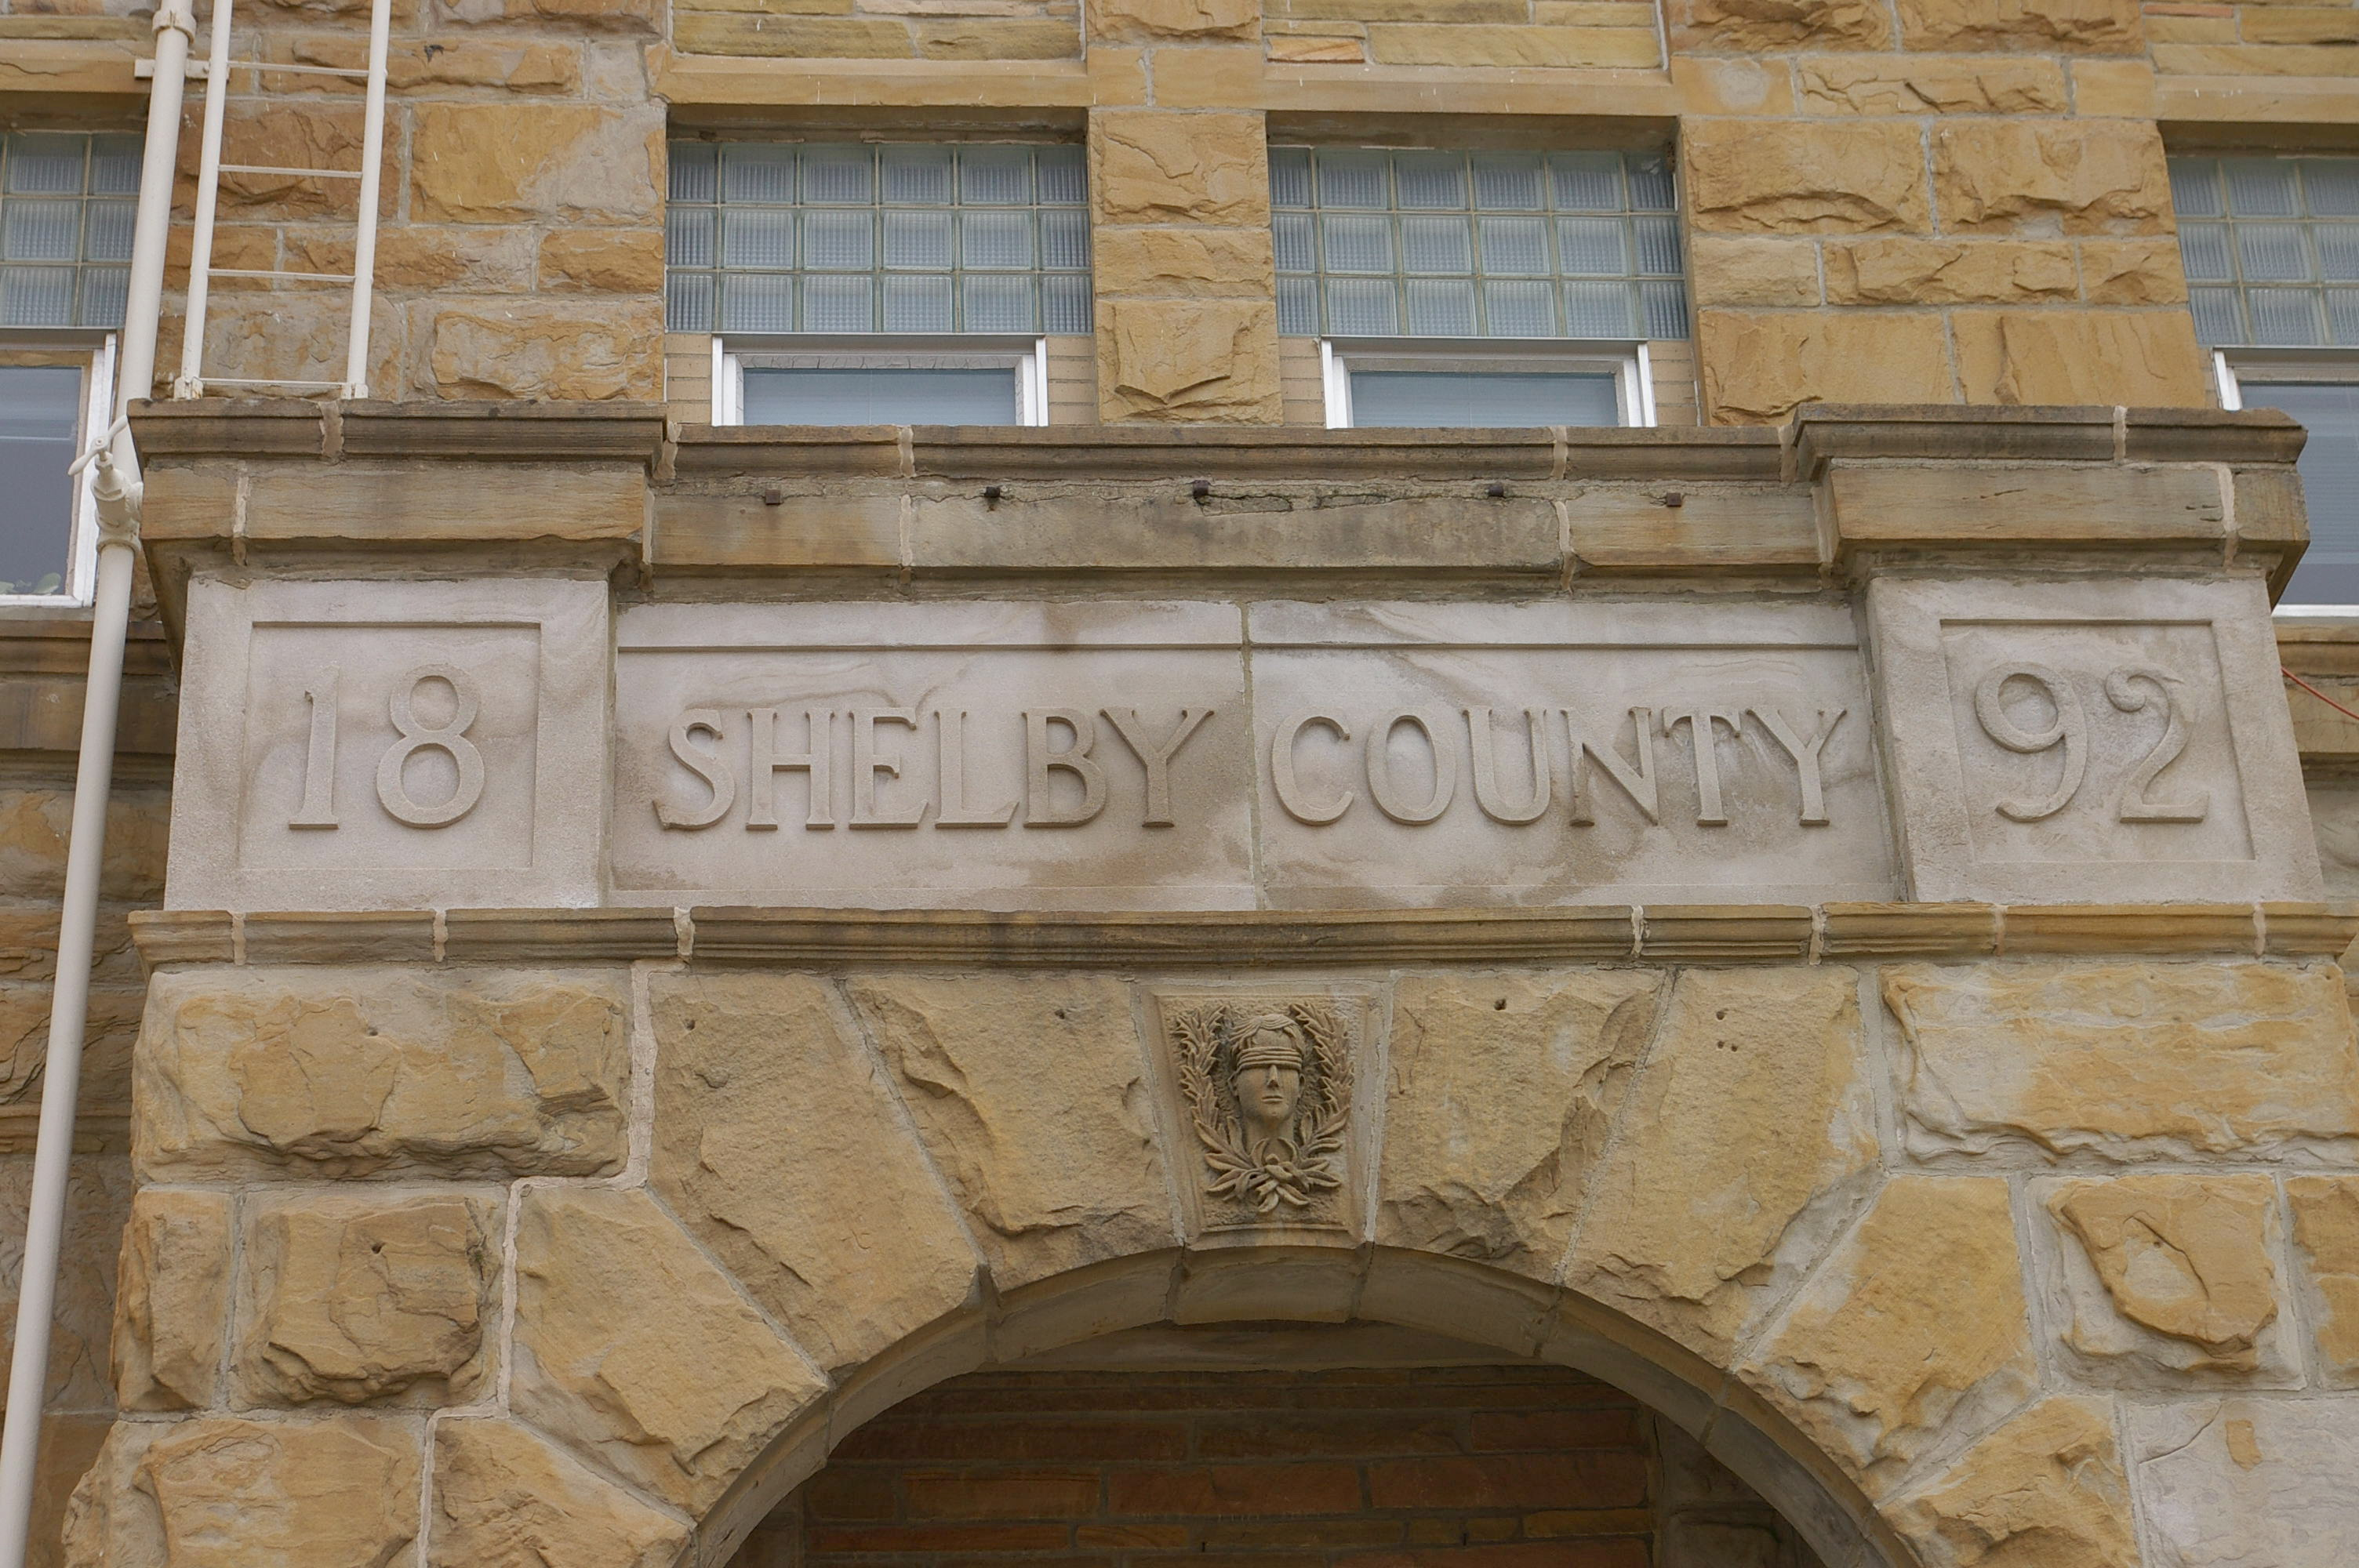 Shelby County Us Courthouses